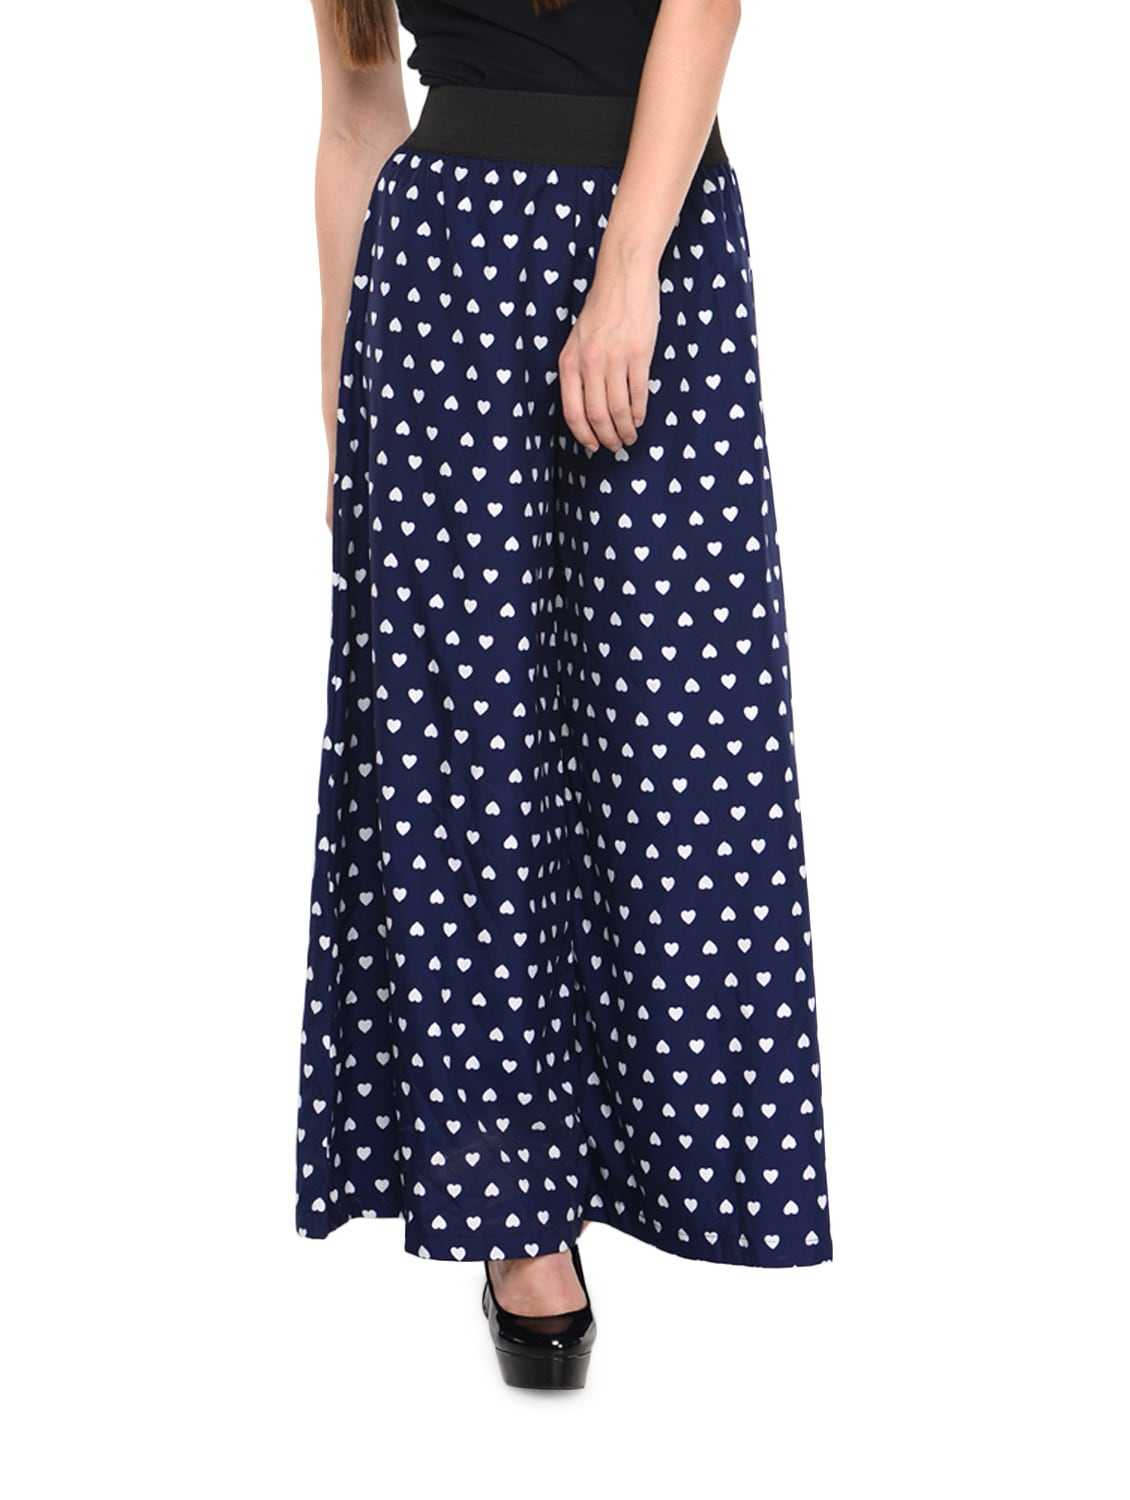 66256d9d331 Buy Blue Heart Print Palazzo Pants by Gracediva - Online shopping for  Palazzos in India